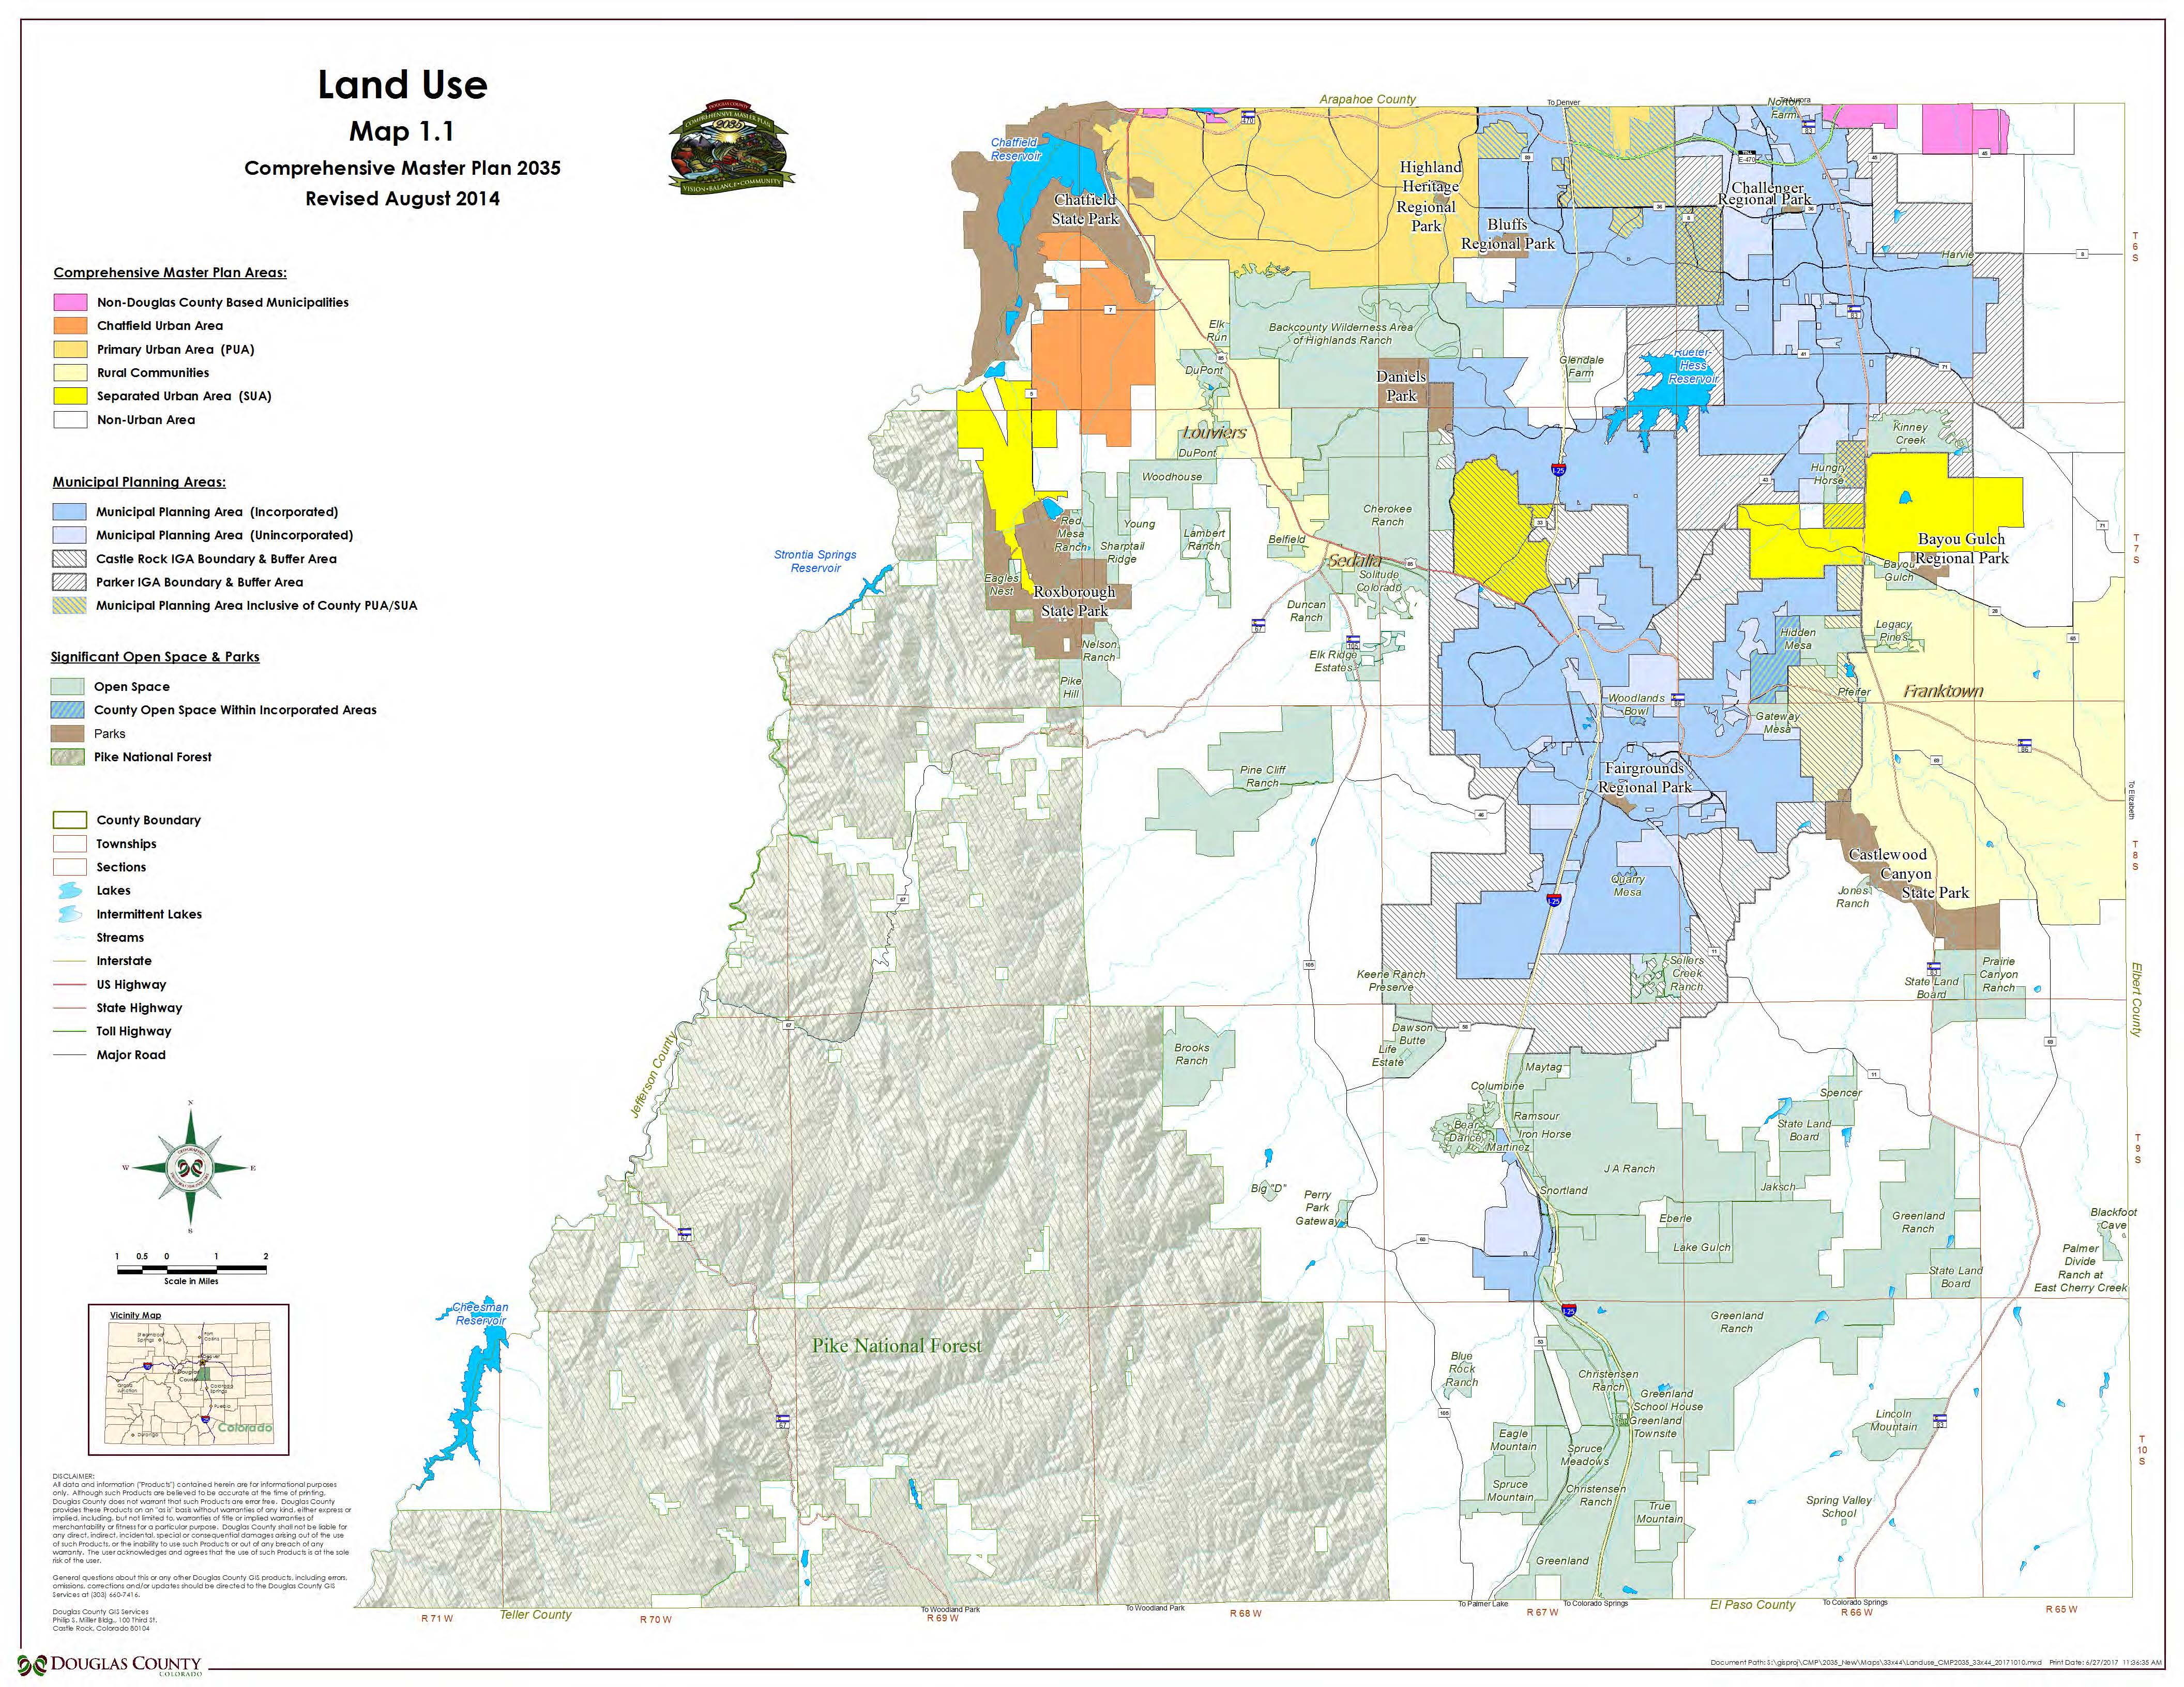 Douglas Countys Geohub Maps - Us-land-use-map